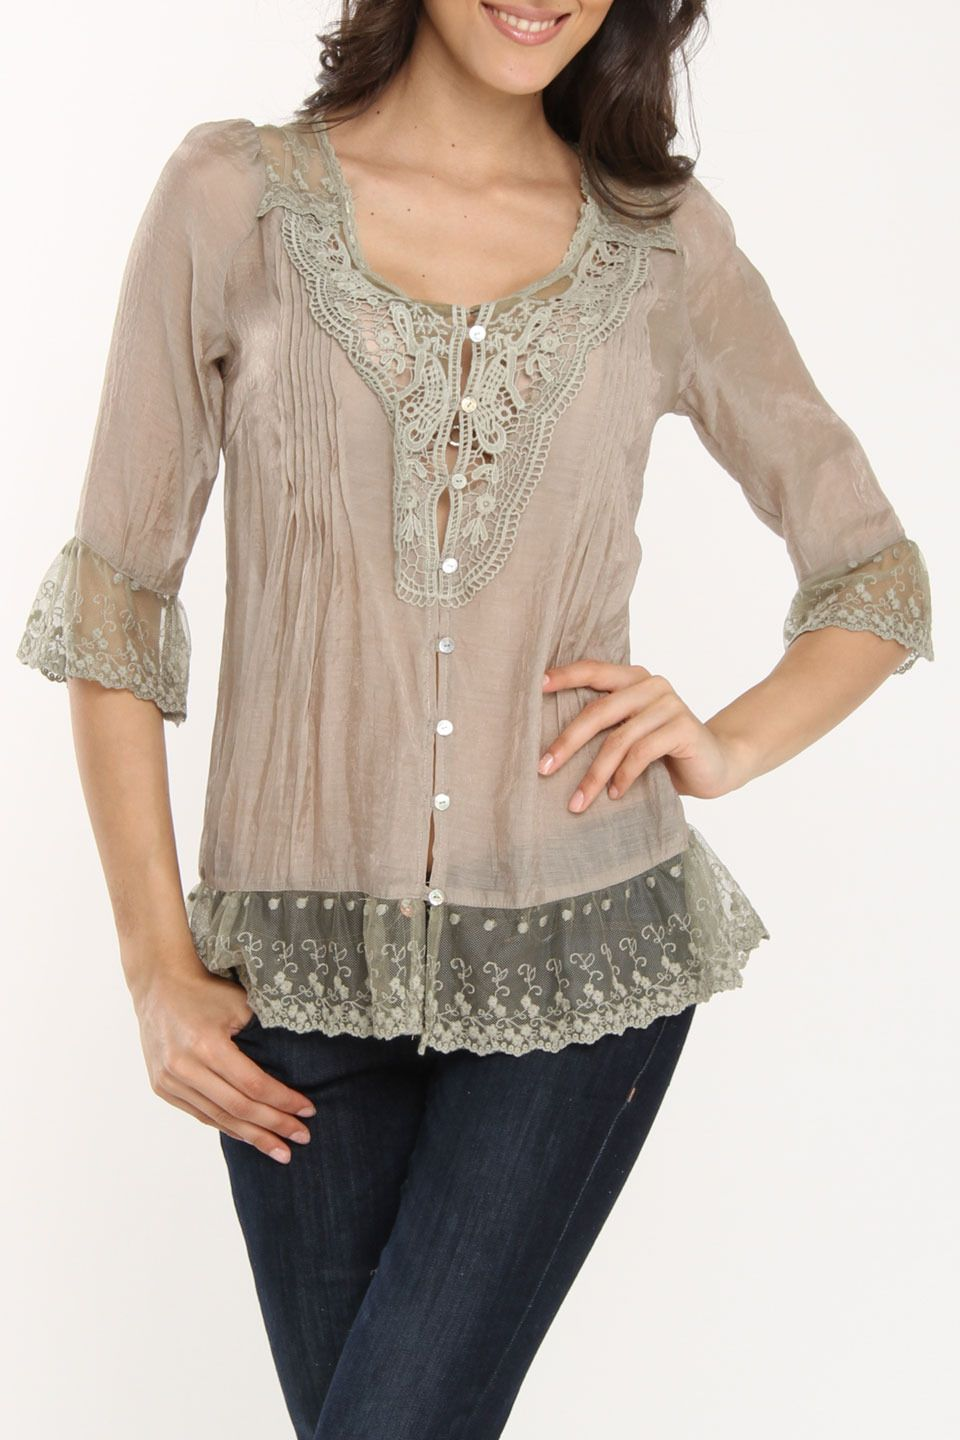 Unavailable david kahn mission top in taupe beyond the rack